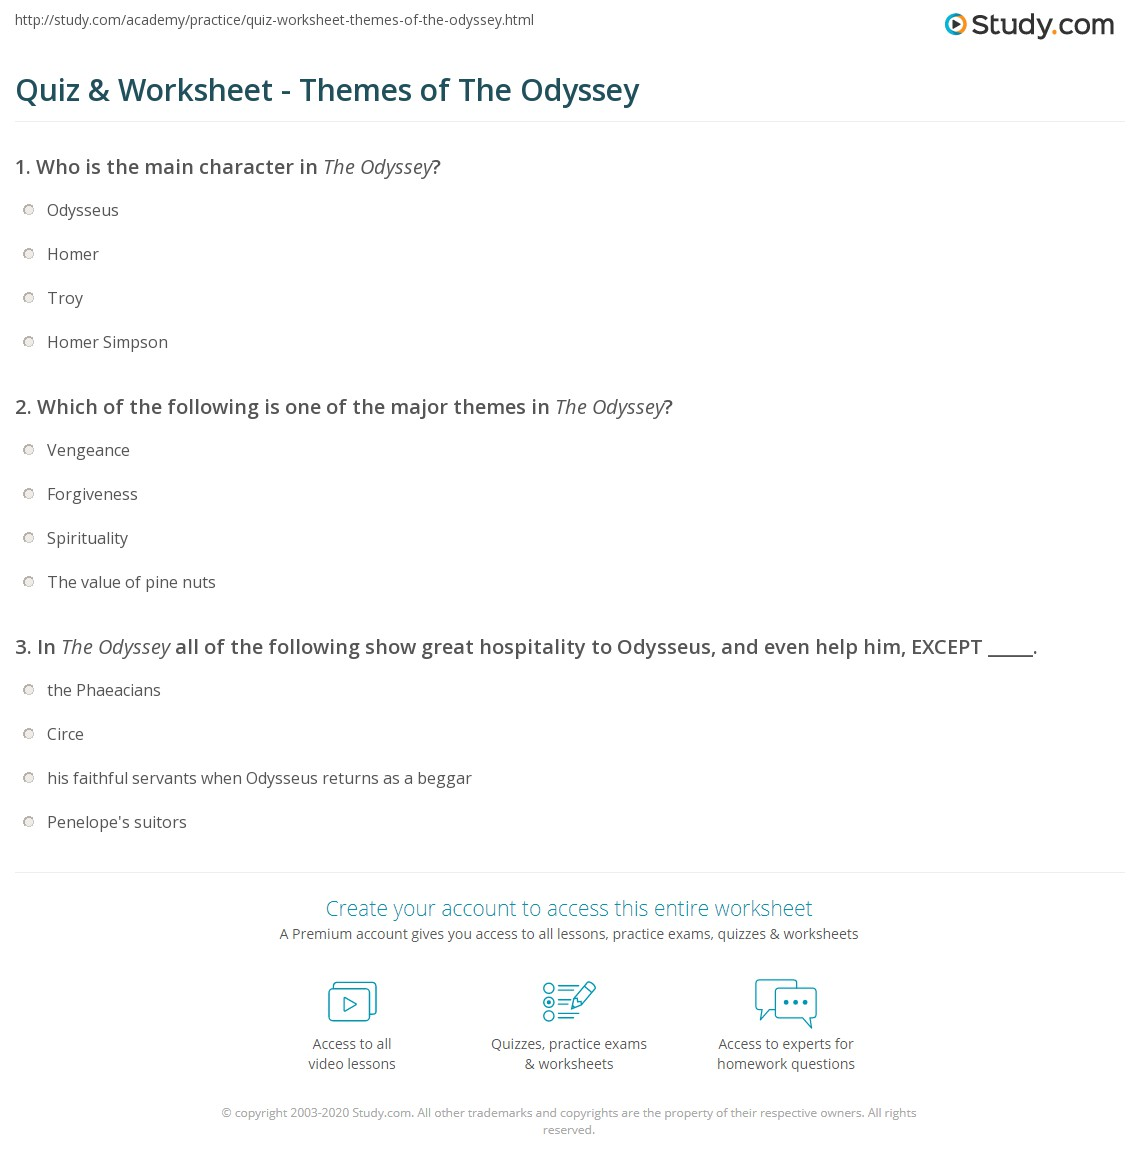 Worksheets Forgiveness Worksheets quiz worksheet themes of the odyssey study com print worksheet